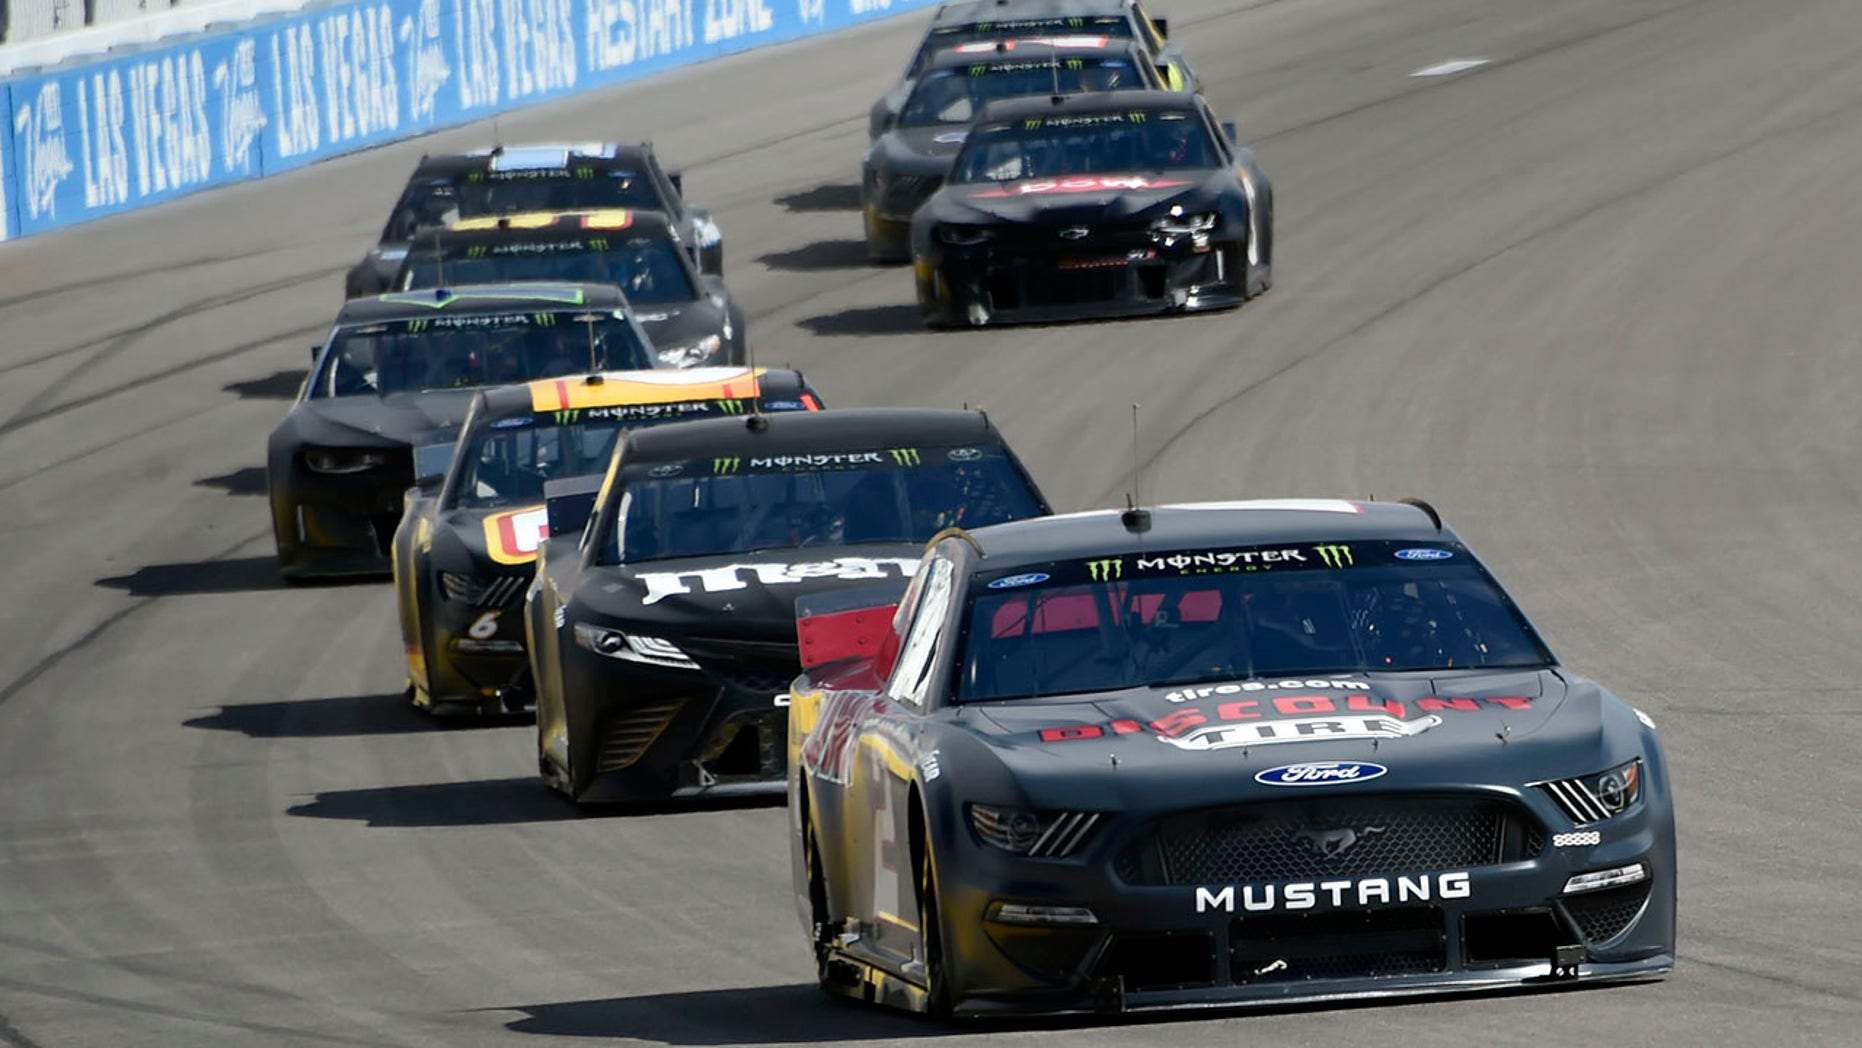 The new rules package was tested at Las Vegas Motor Speedway in January